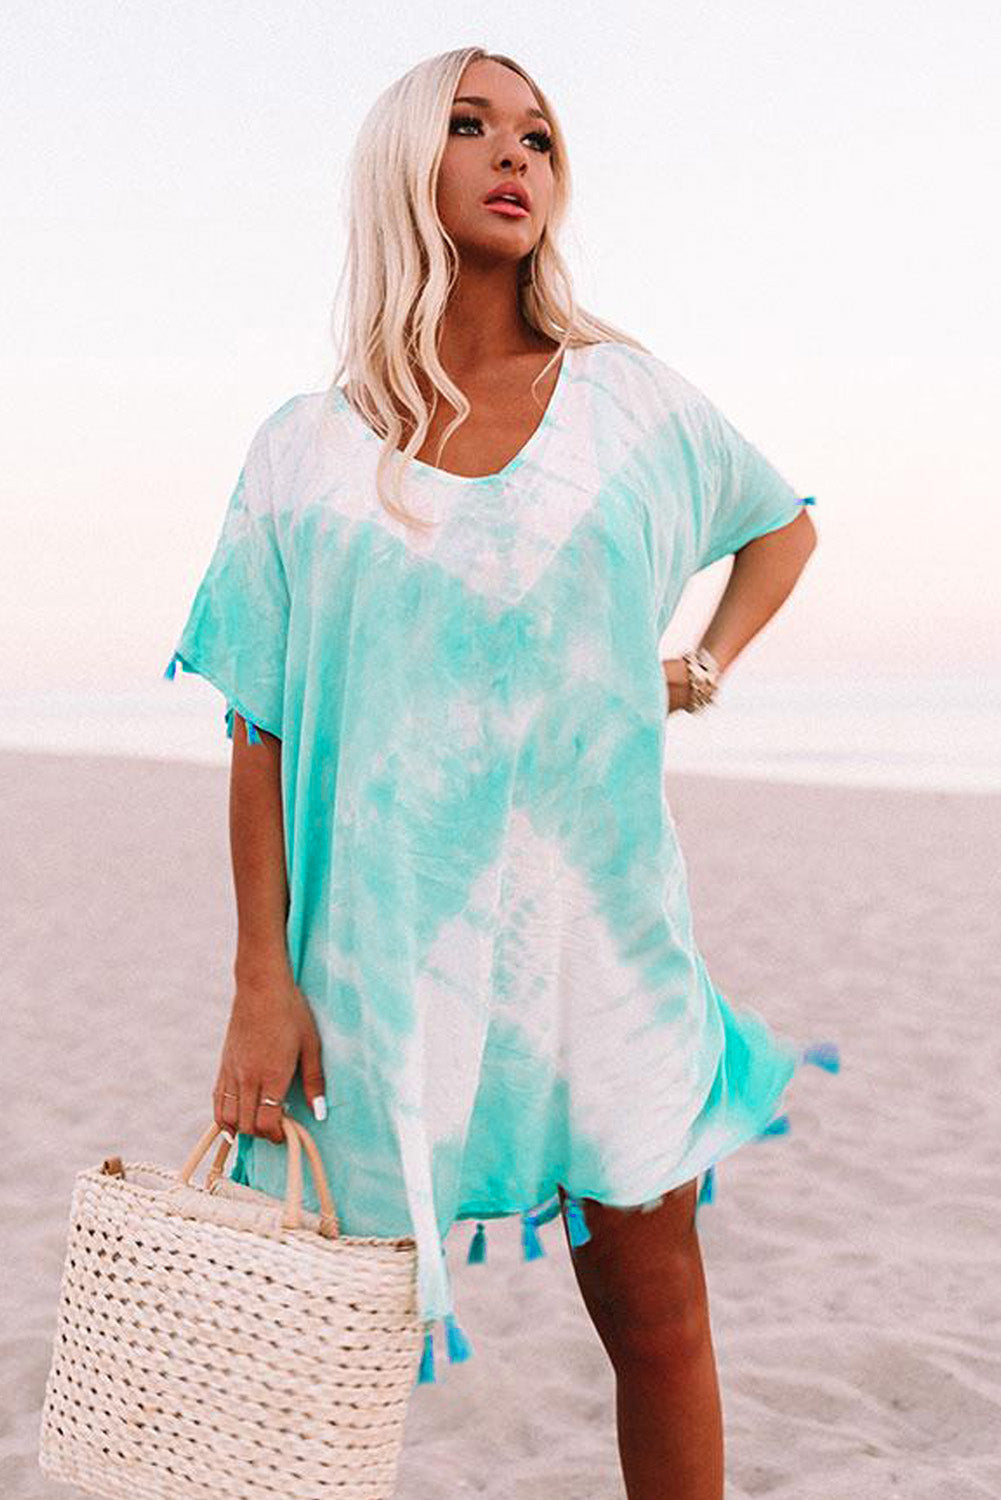 Aqua Seaside Starlet Tie-dye Tunic Beach Cover-ups Discount Designer Fashion Clothes Shoes Bags Women Men Kids Children Black Owned Business